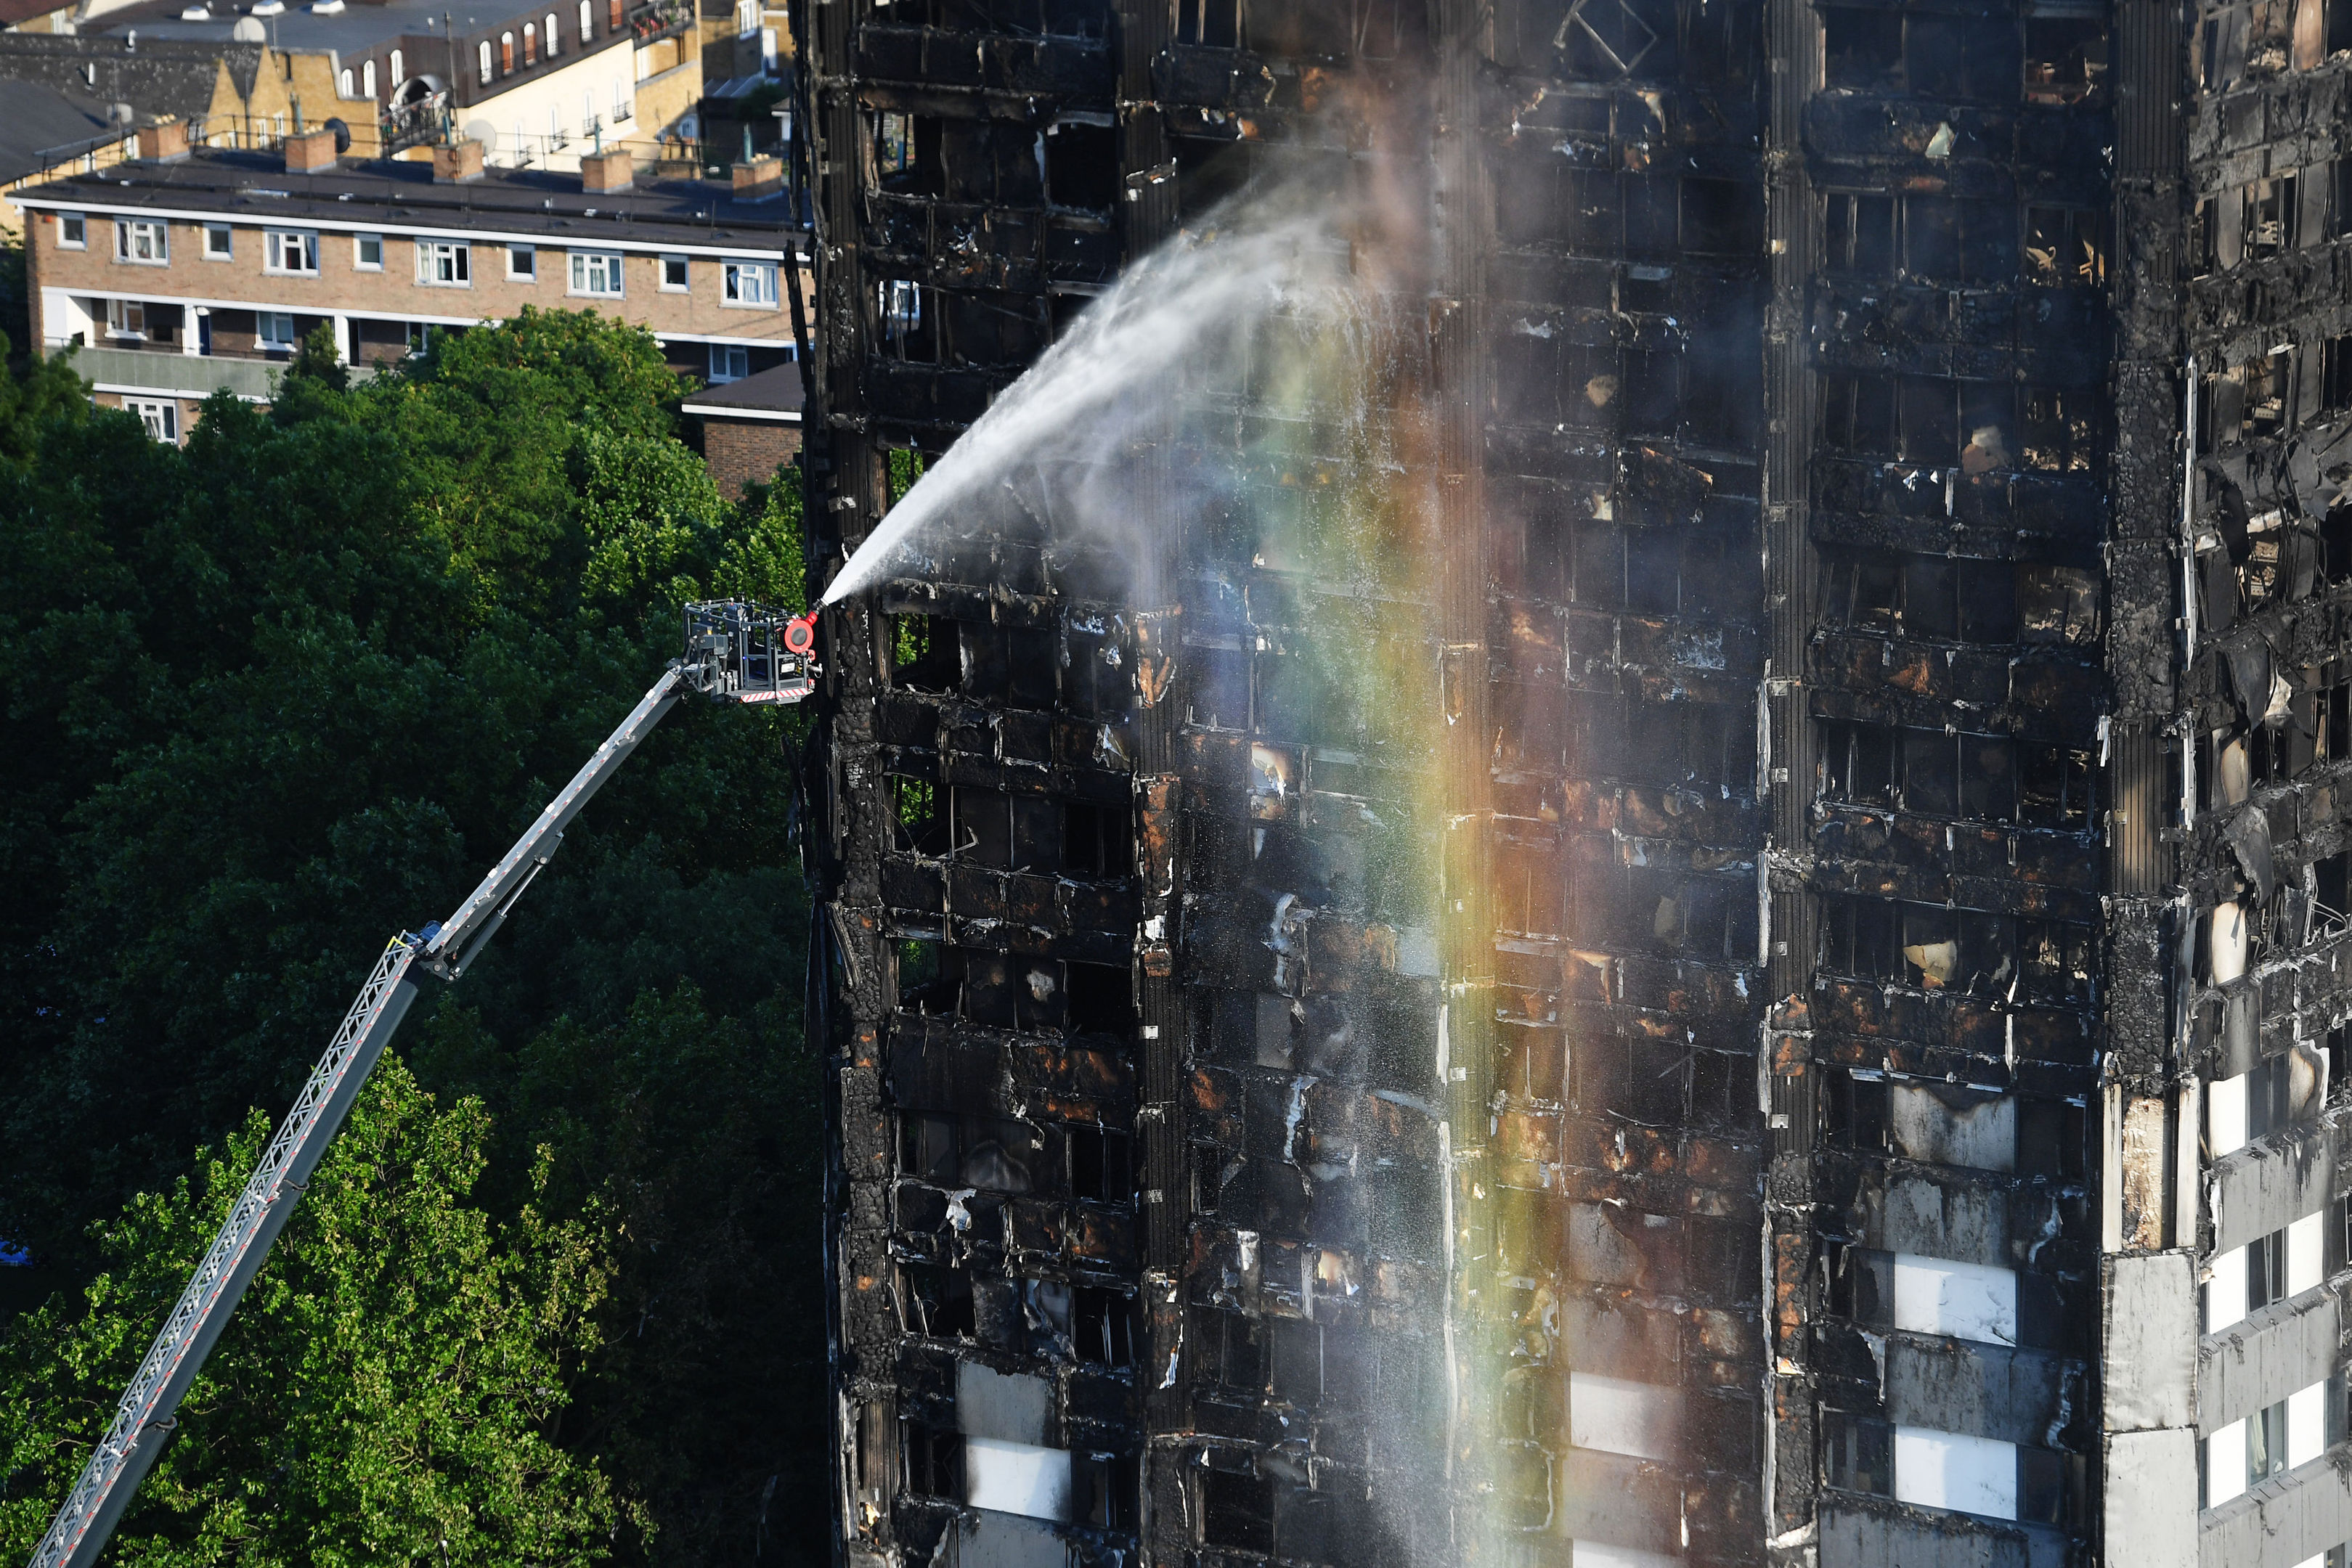 Firefighters spray water after a fire engulfed the 24-storey Grenfell Tower in west London.